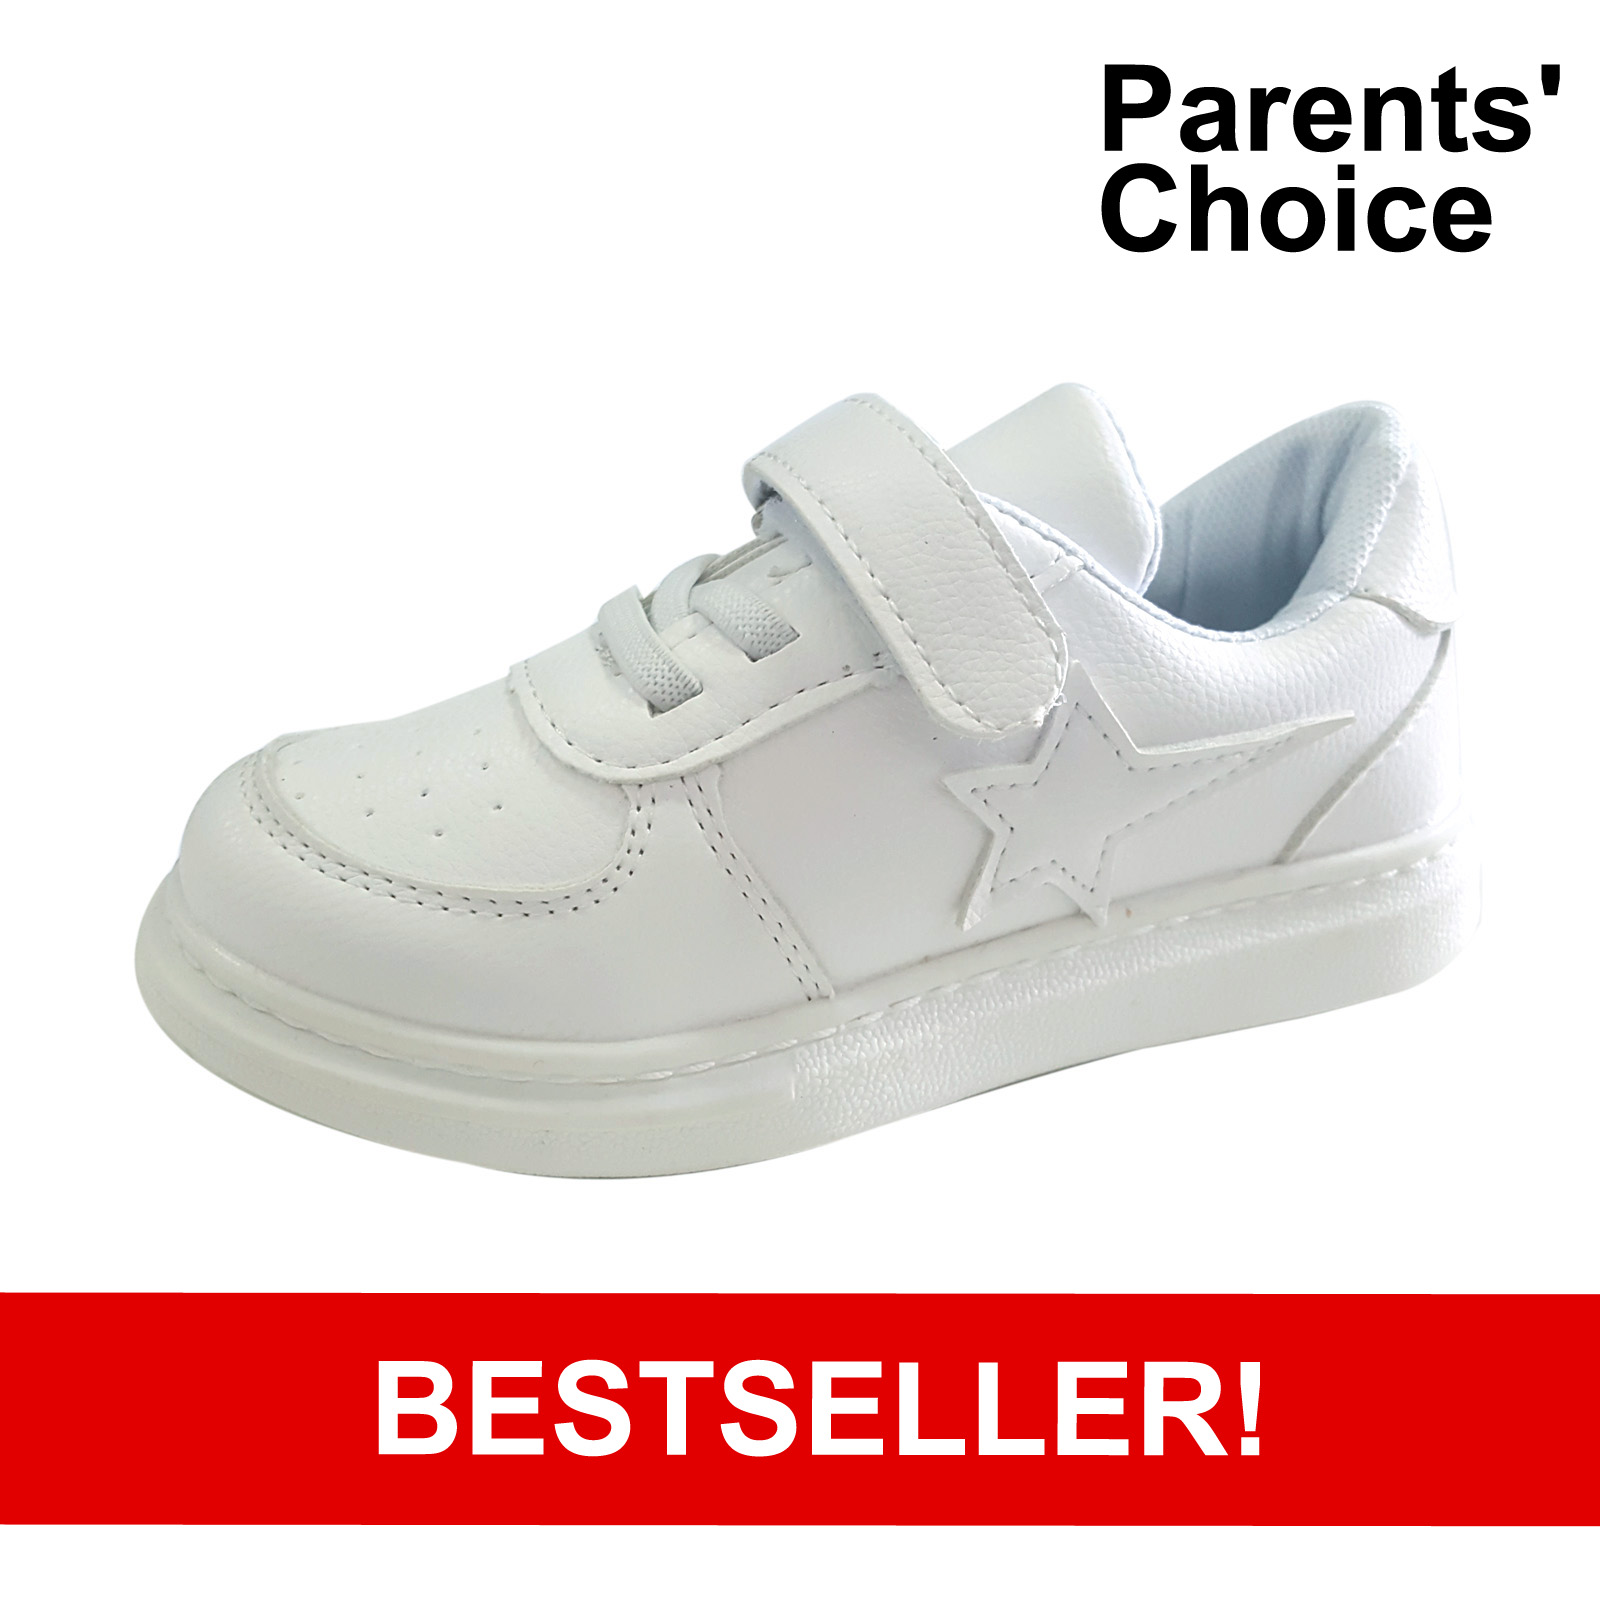 baby-fair Raf Raf White Leather School Shoes (3-7 years)